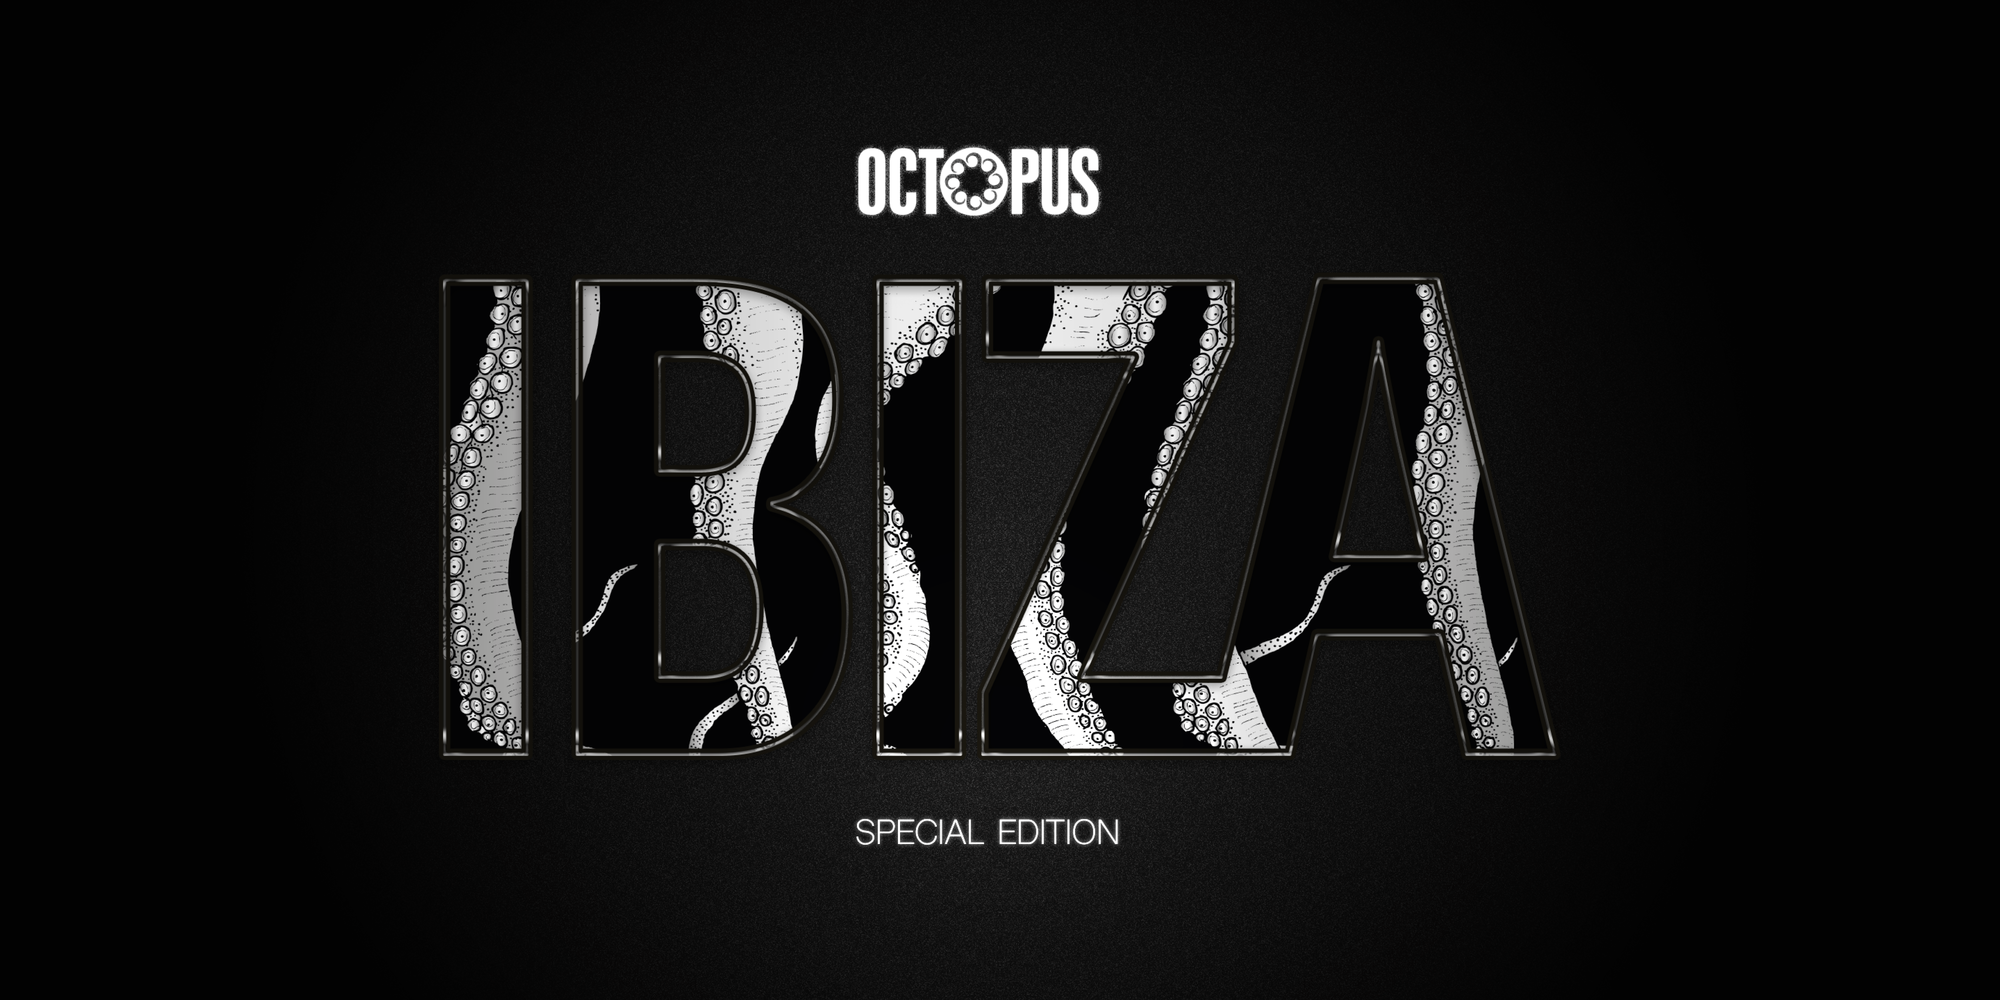 OCTOPUS IBIZA PACK SUMMER '17 SPECIAL RELEASE